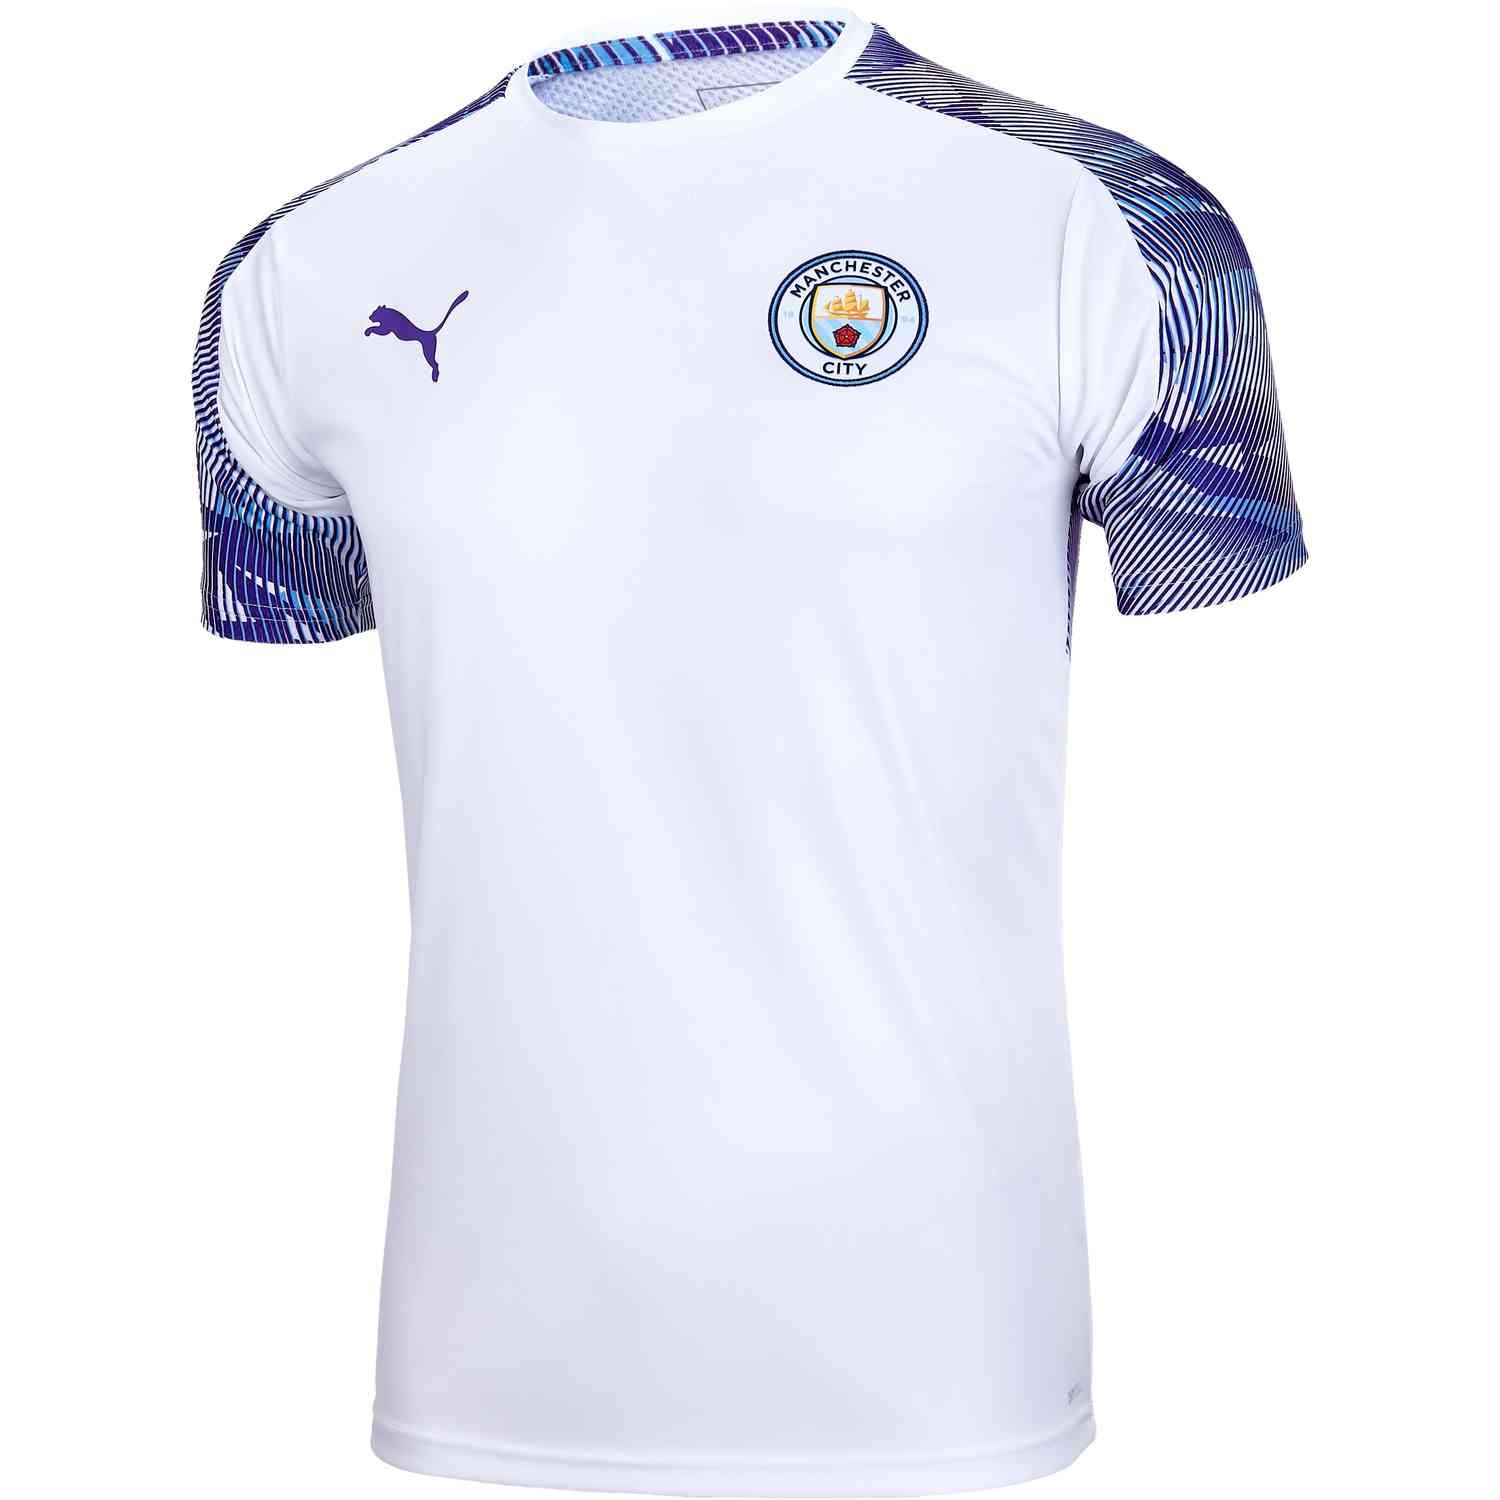 Puma Manchester City Training Jersey White Tillandsia Purple Soccerpro Manchester City Training Tops Clothes